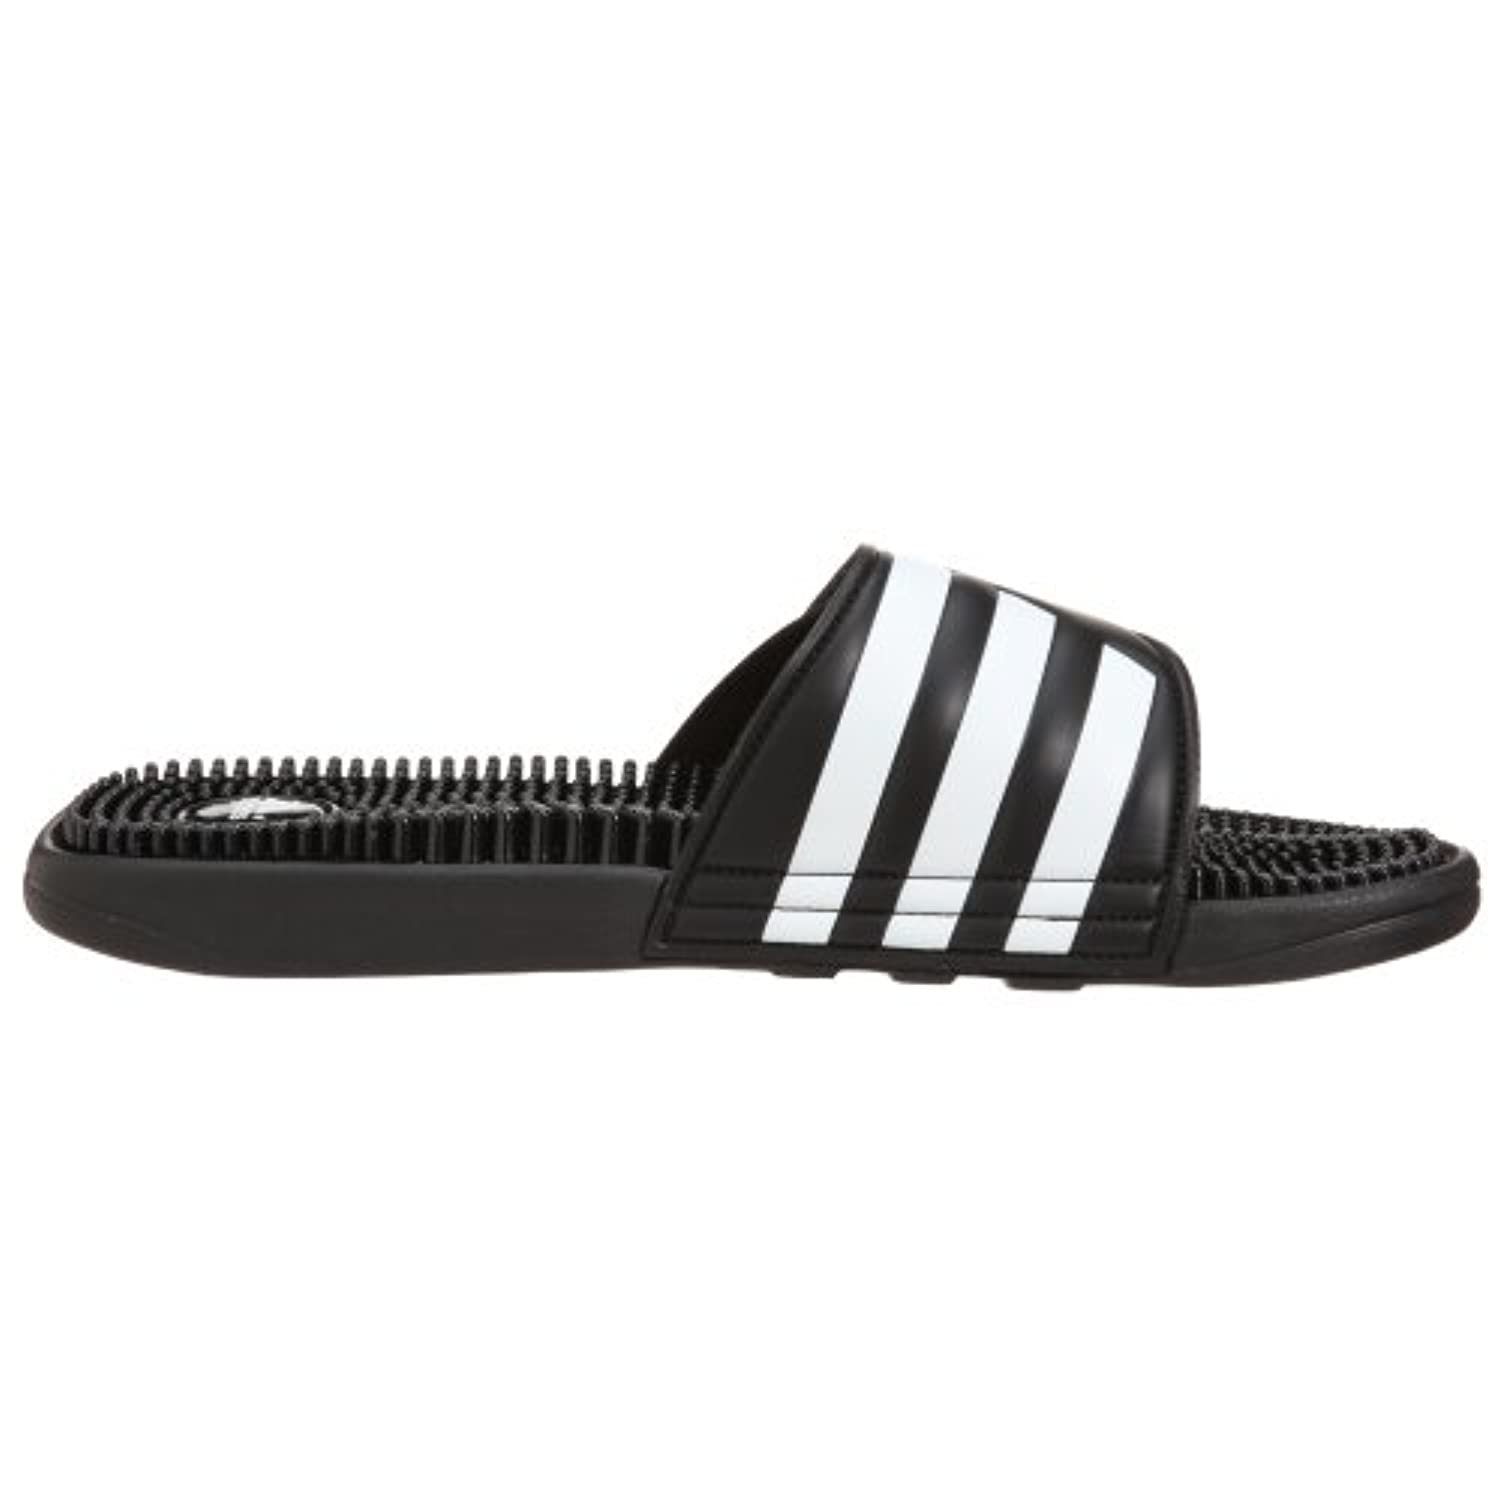 adidas Adissage, Unisex Adults' Beach & Pool Shoes, Black (black/black/running White Ftw), 7 UK